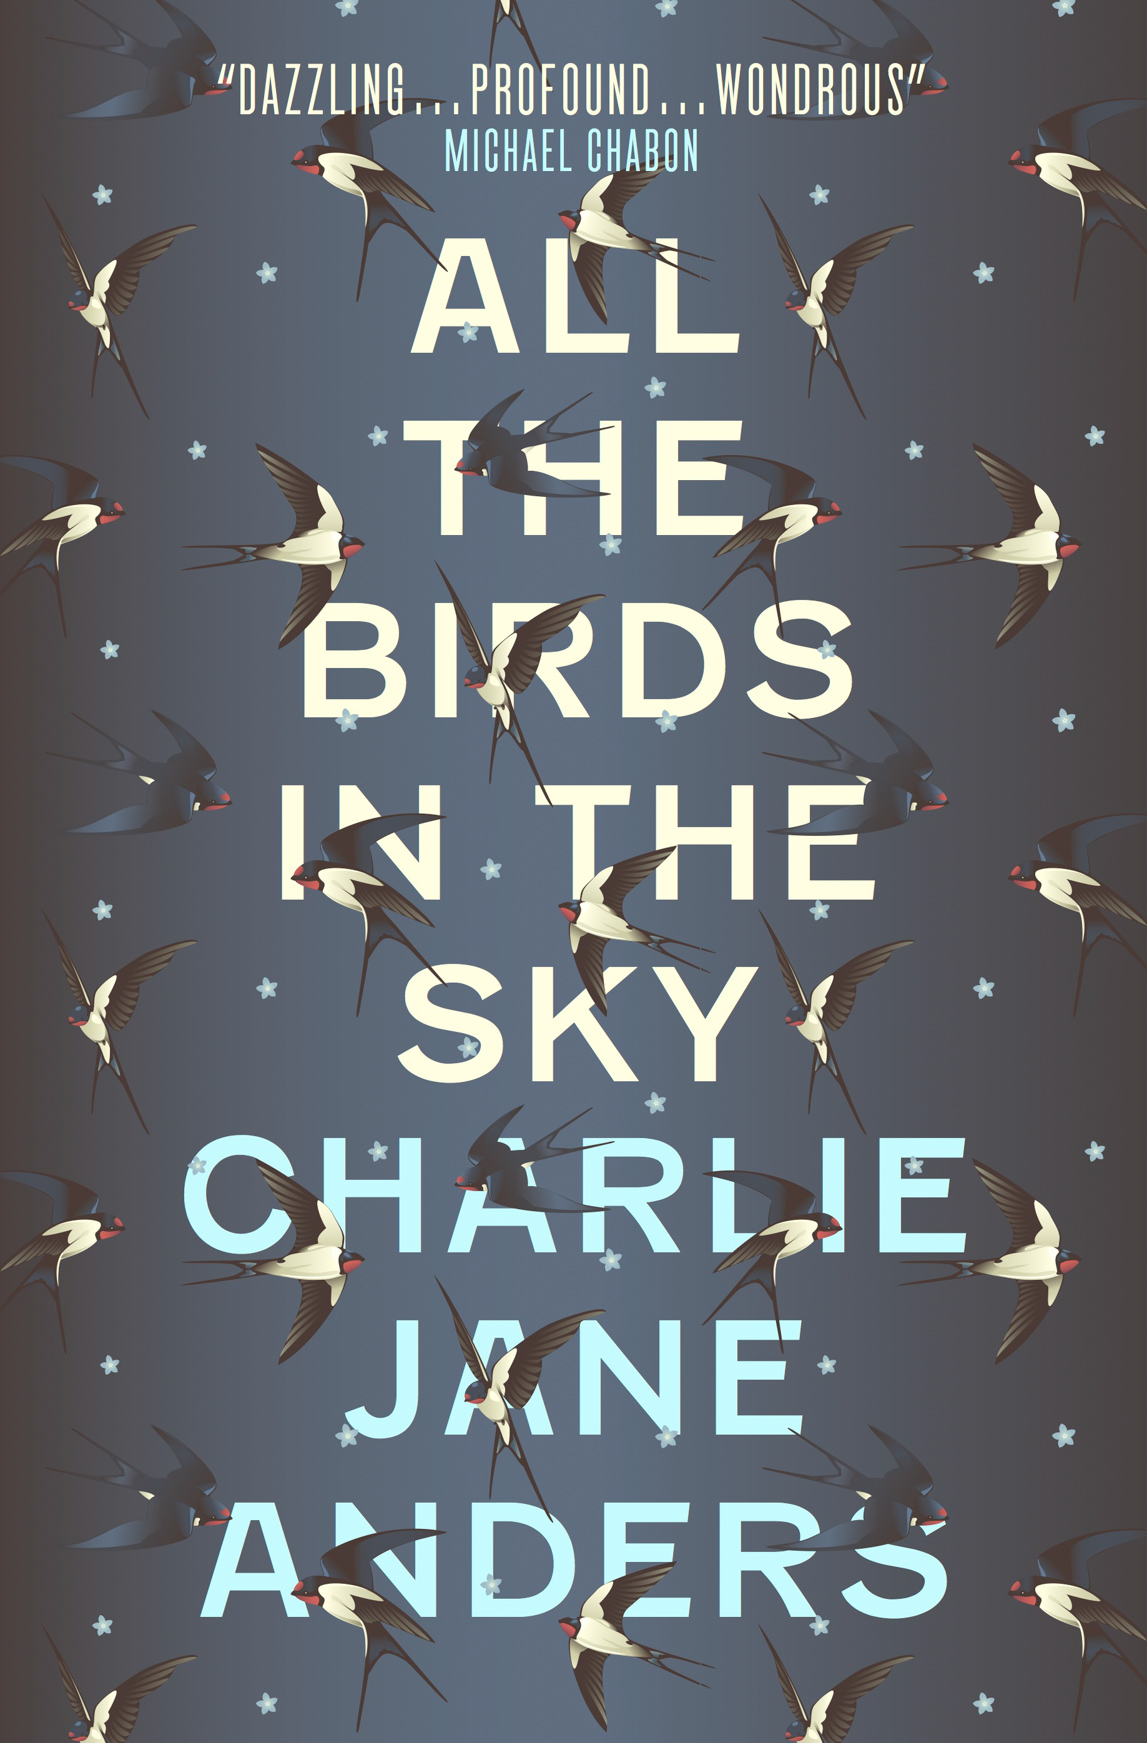 All the Birds in the Sky_Design by Will Staehle